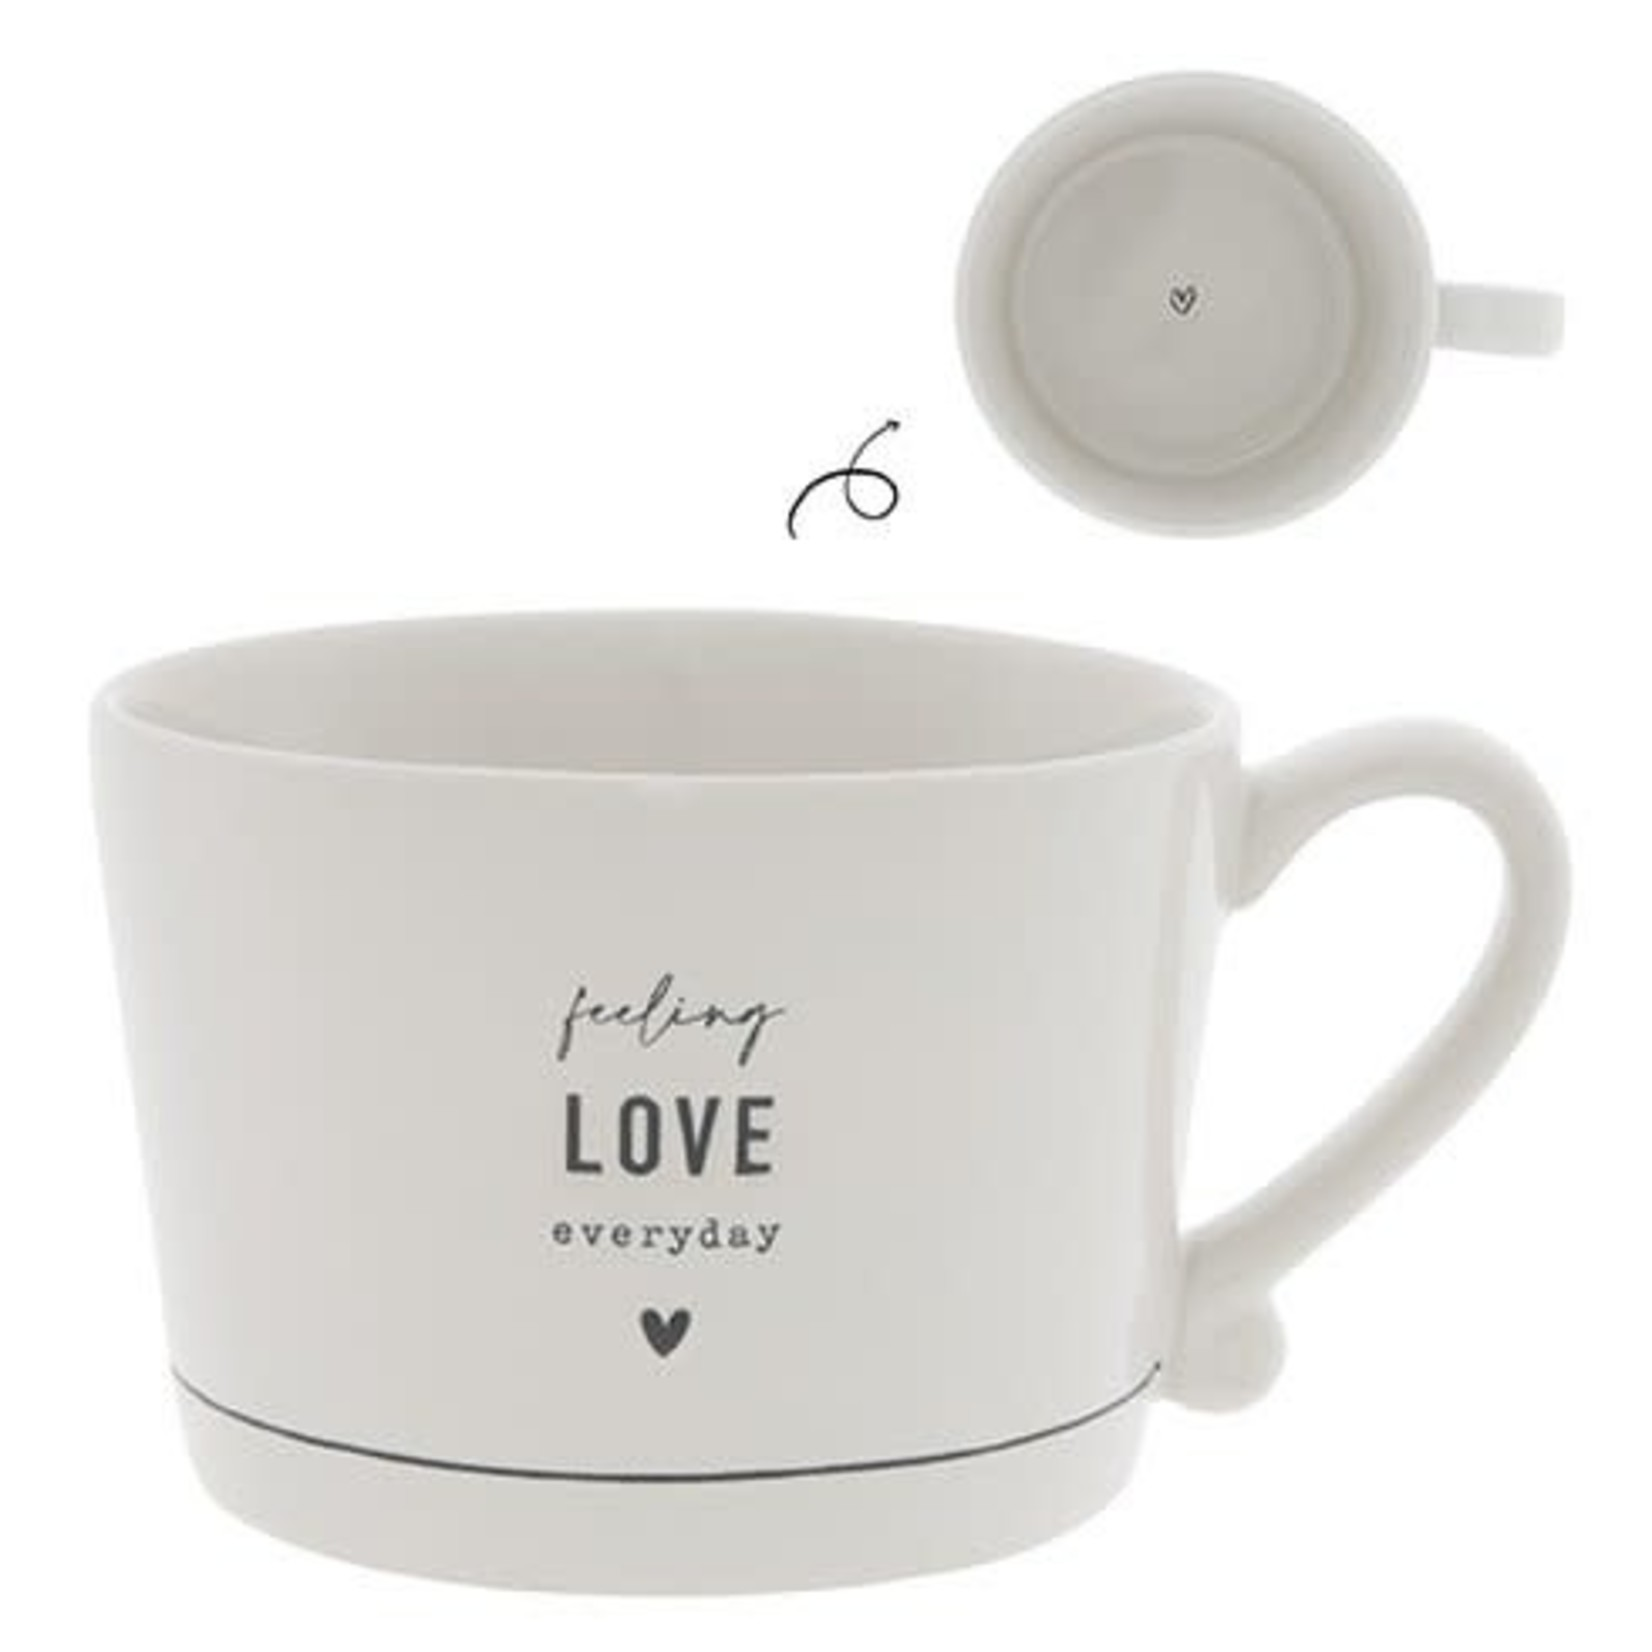 Bastion Collections Cup large White Feeling Love Everyday in Black